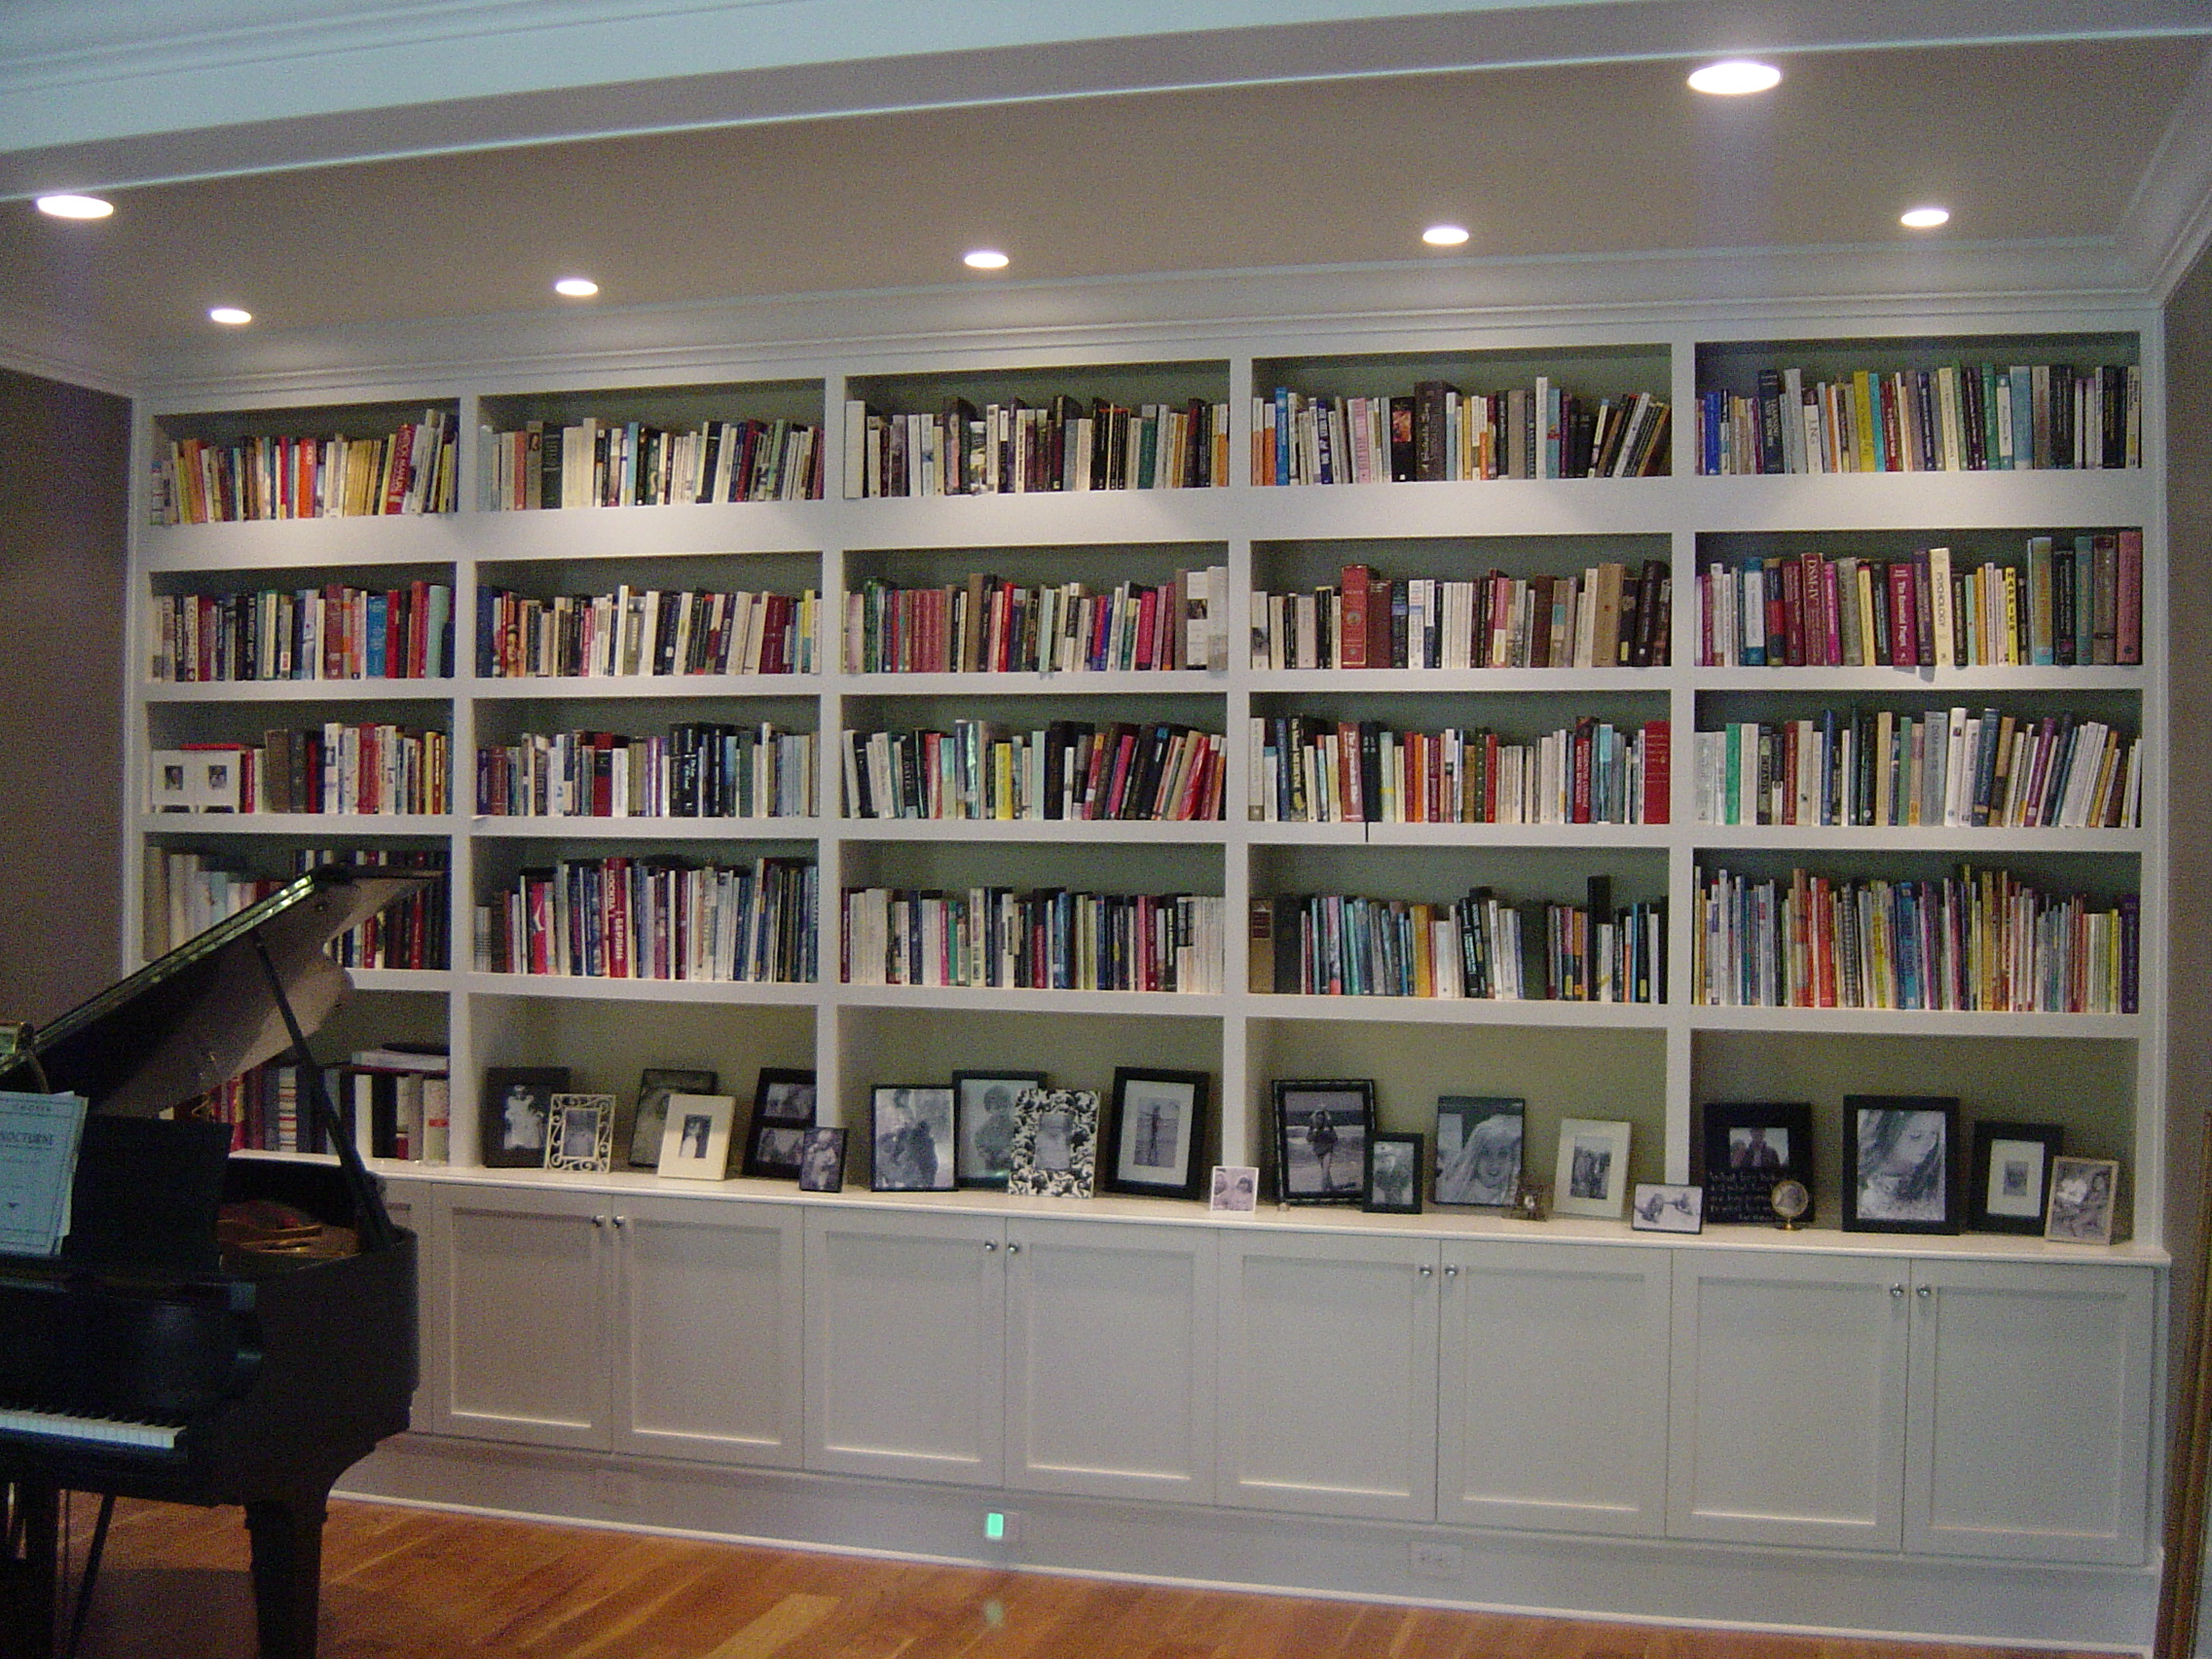 my built image alley up shelfs bookshelves shelf right we book how our library